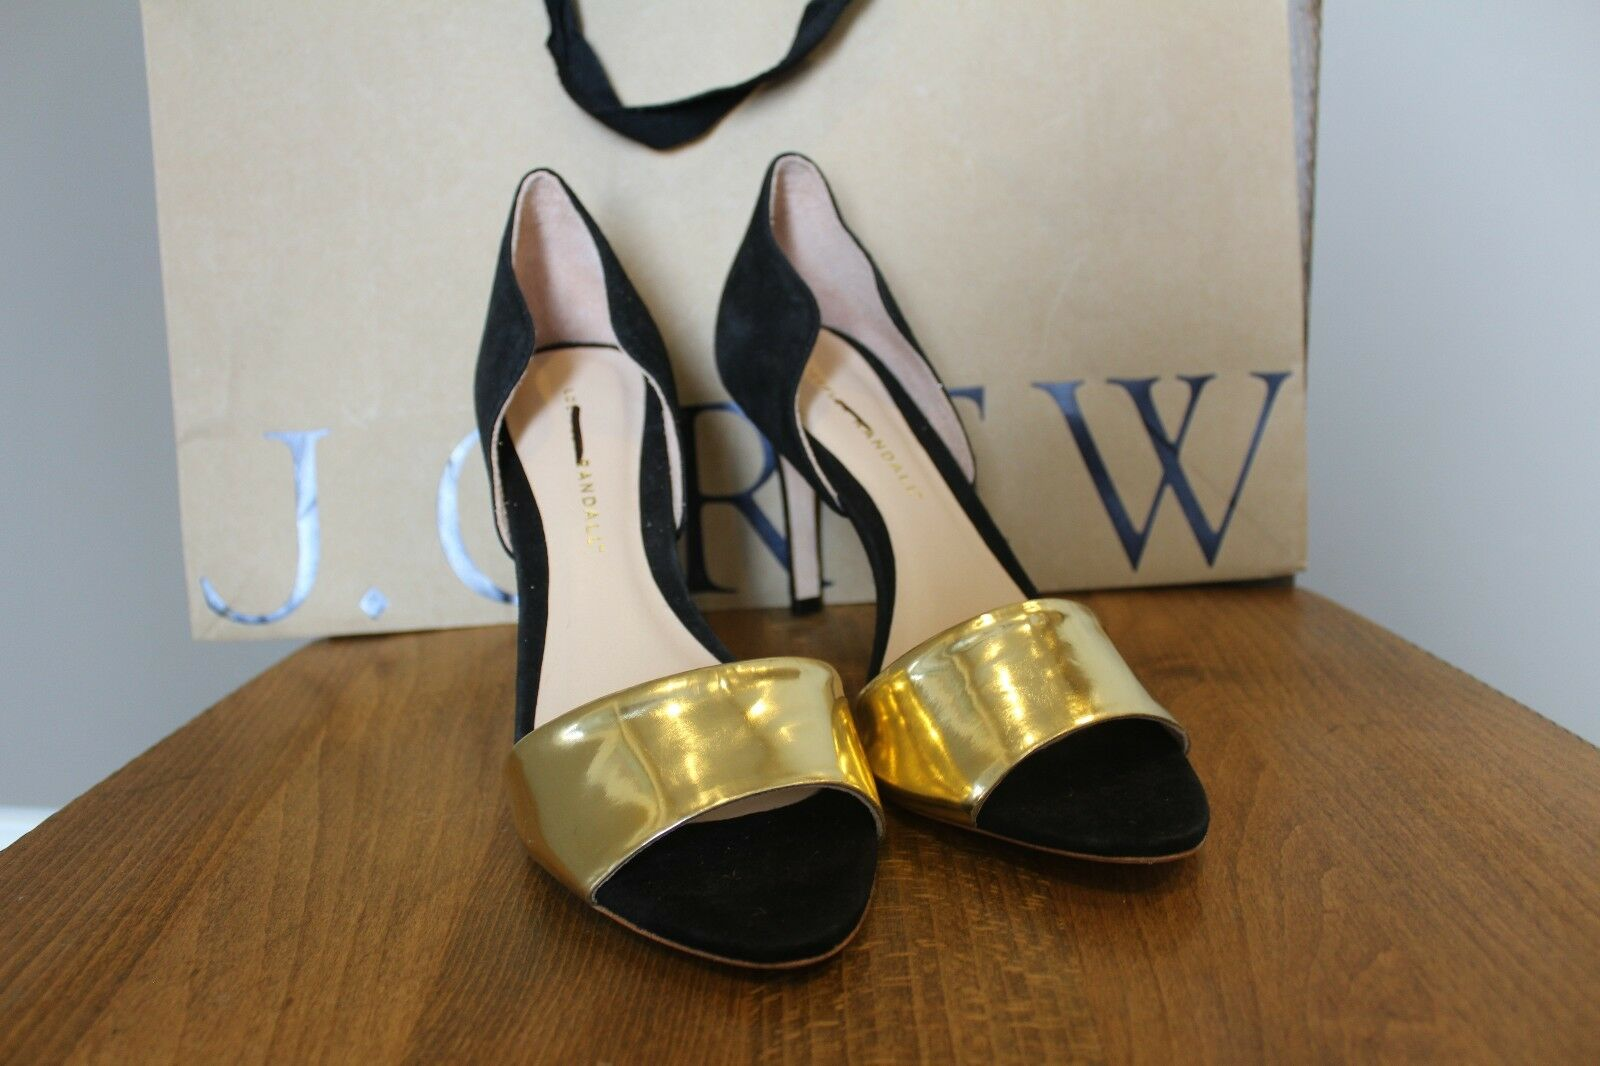 New J Crew Partner LOEFFLER RANDALL Heels Black Suede with Gold Tone 7.5